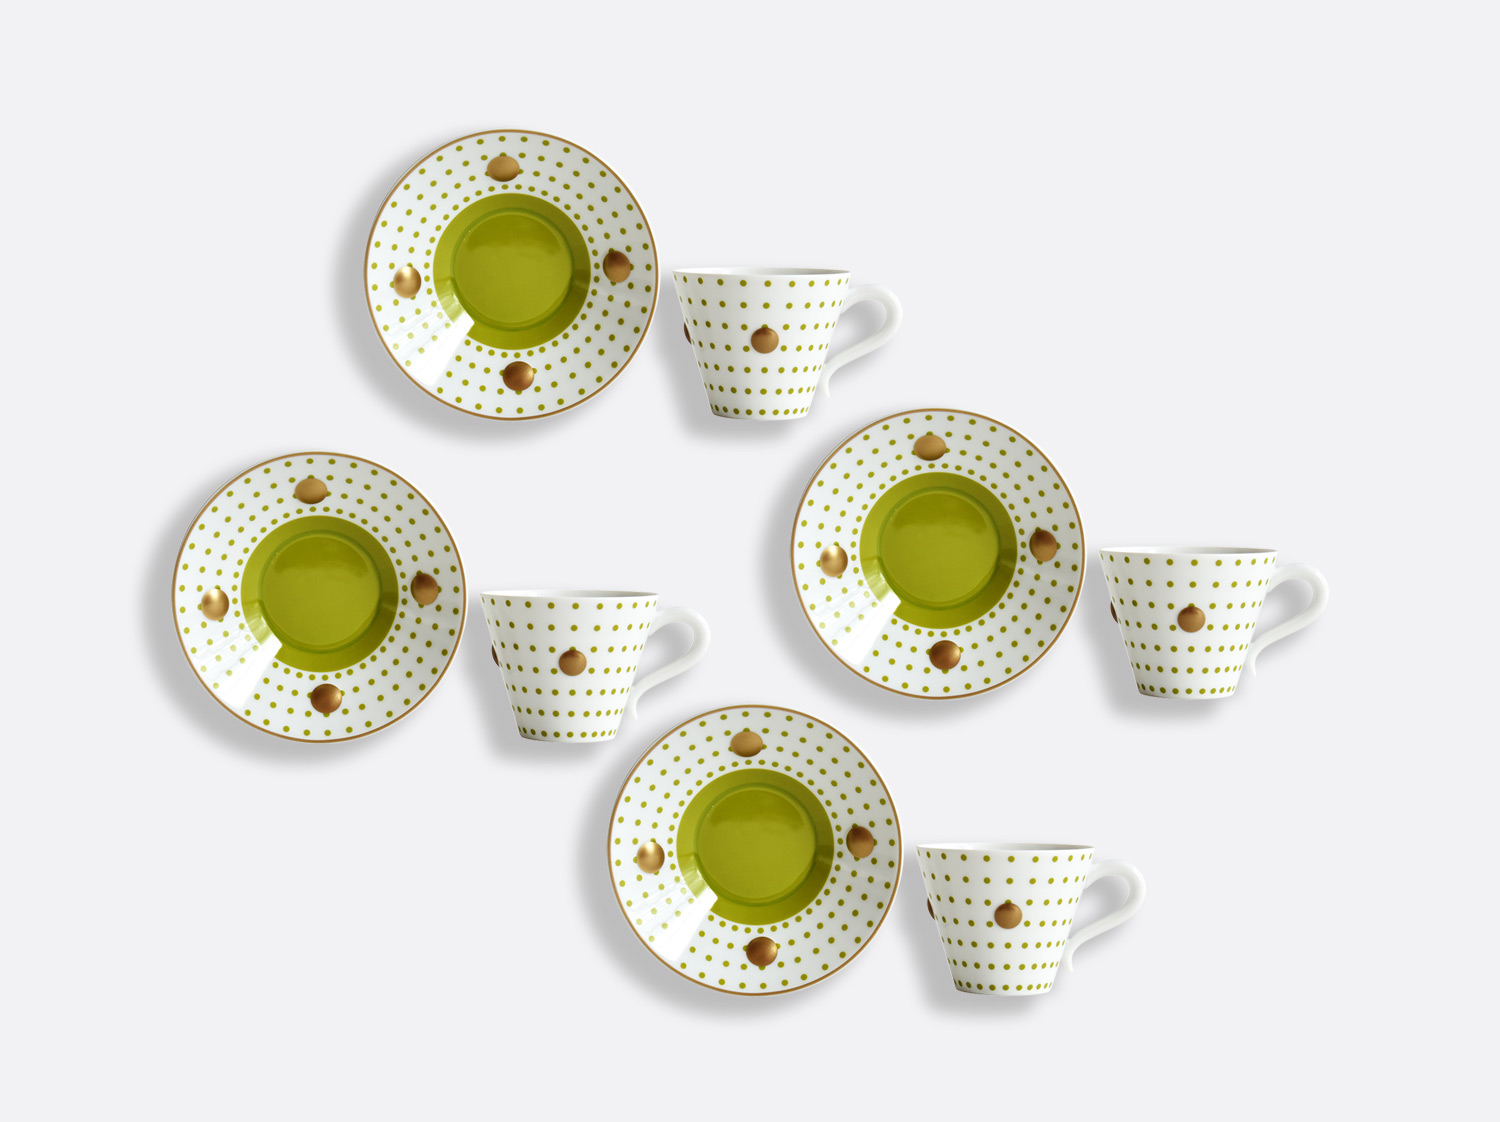 China Set of Absinthe green cups and saucers 13 cl - Set of 4 of the collection Knossos - Olivier Gagnère | Bernardaud